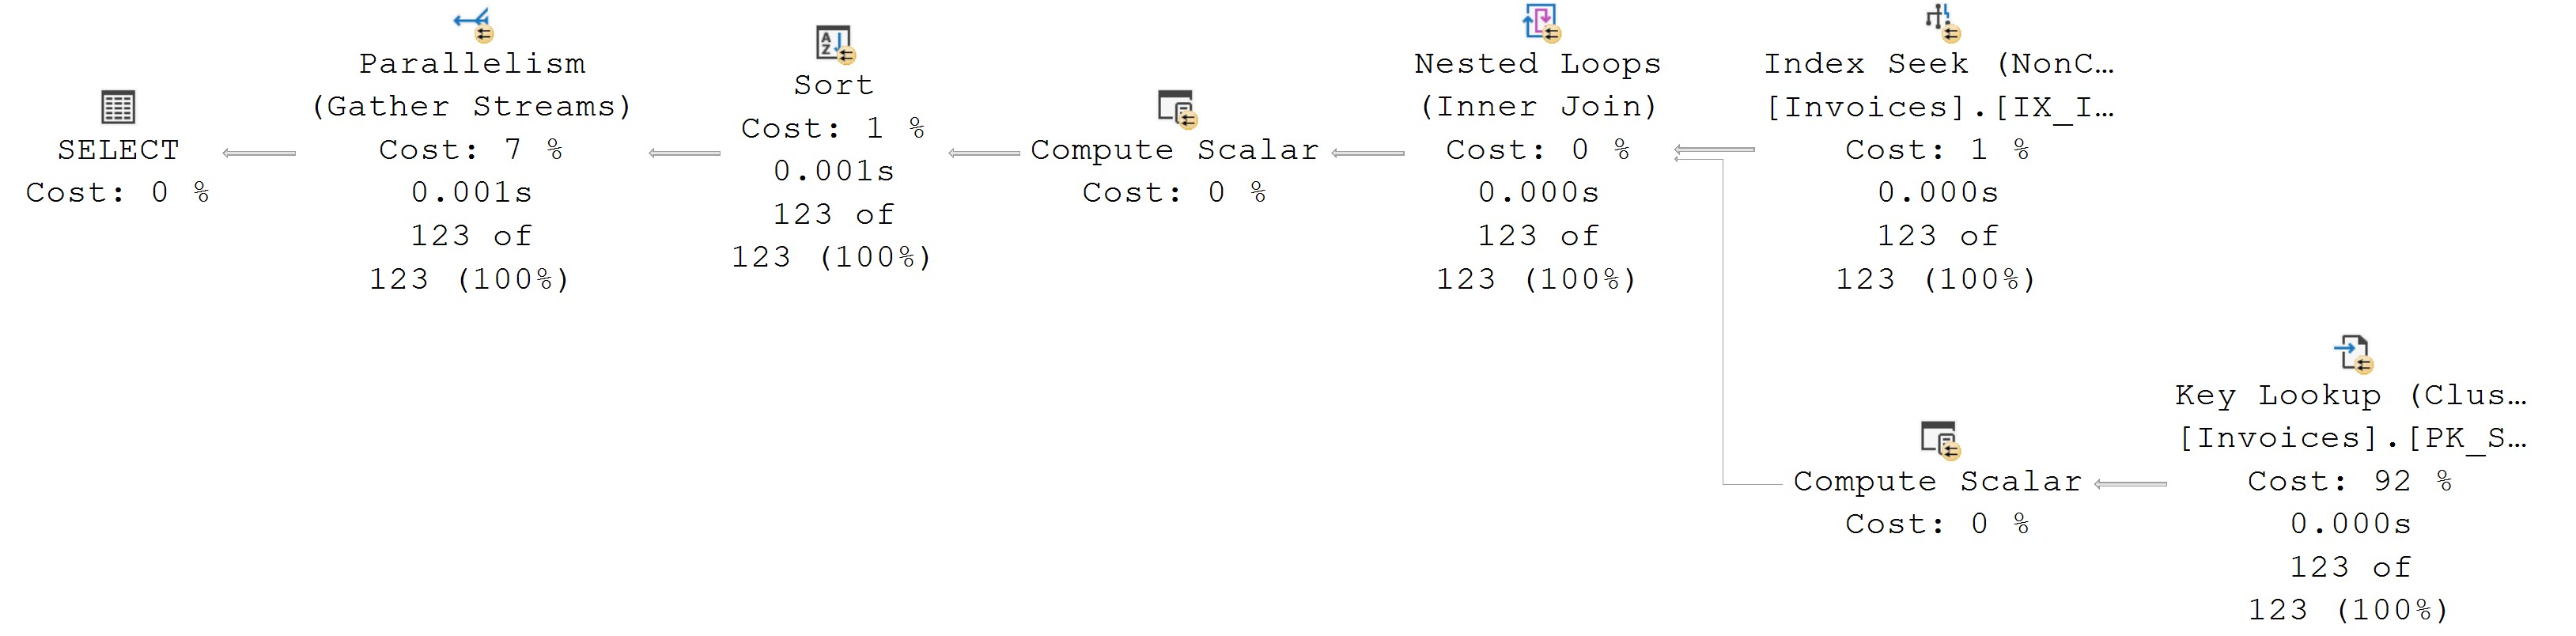 SQL SERVER - Using Query Hint ENABLE_PARALLEL_PLAN_PREFERENCE queryhint2